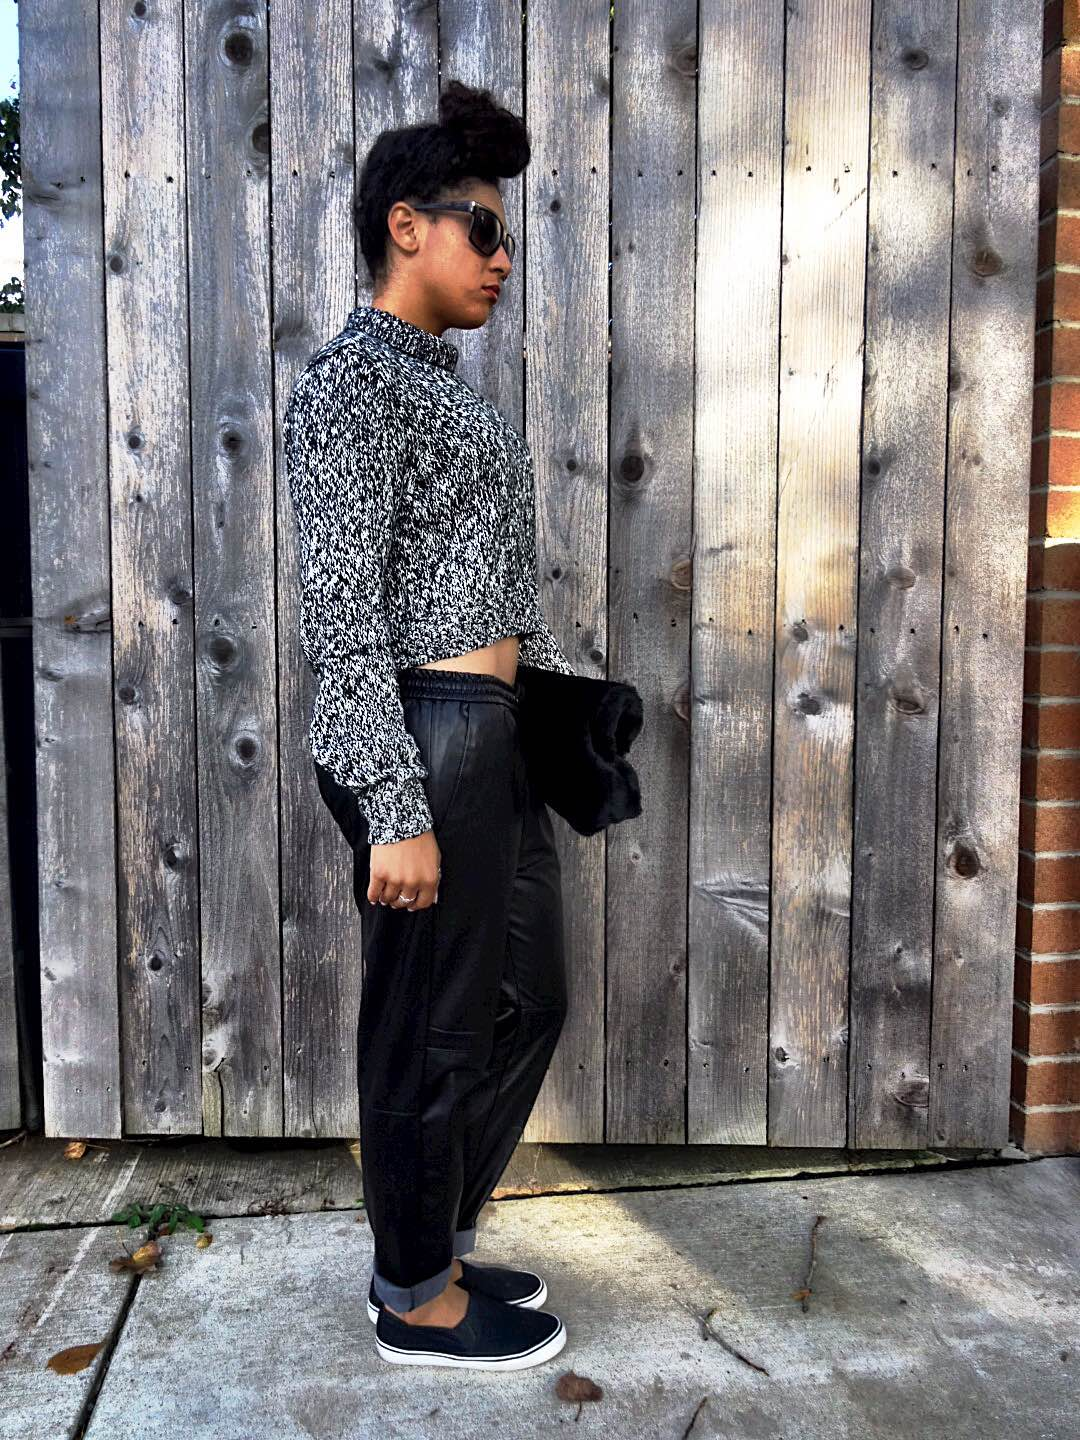 H&M Cropped Sweater Outfit